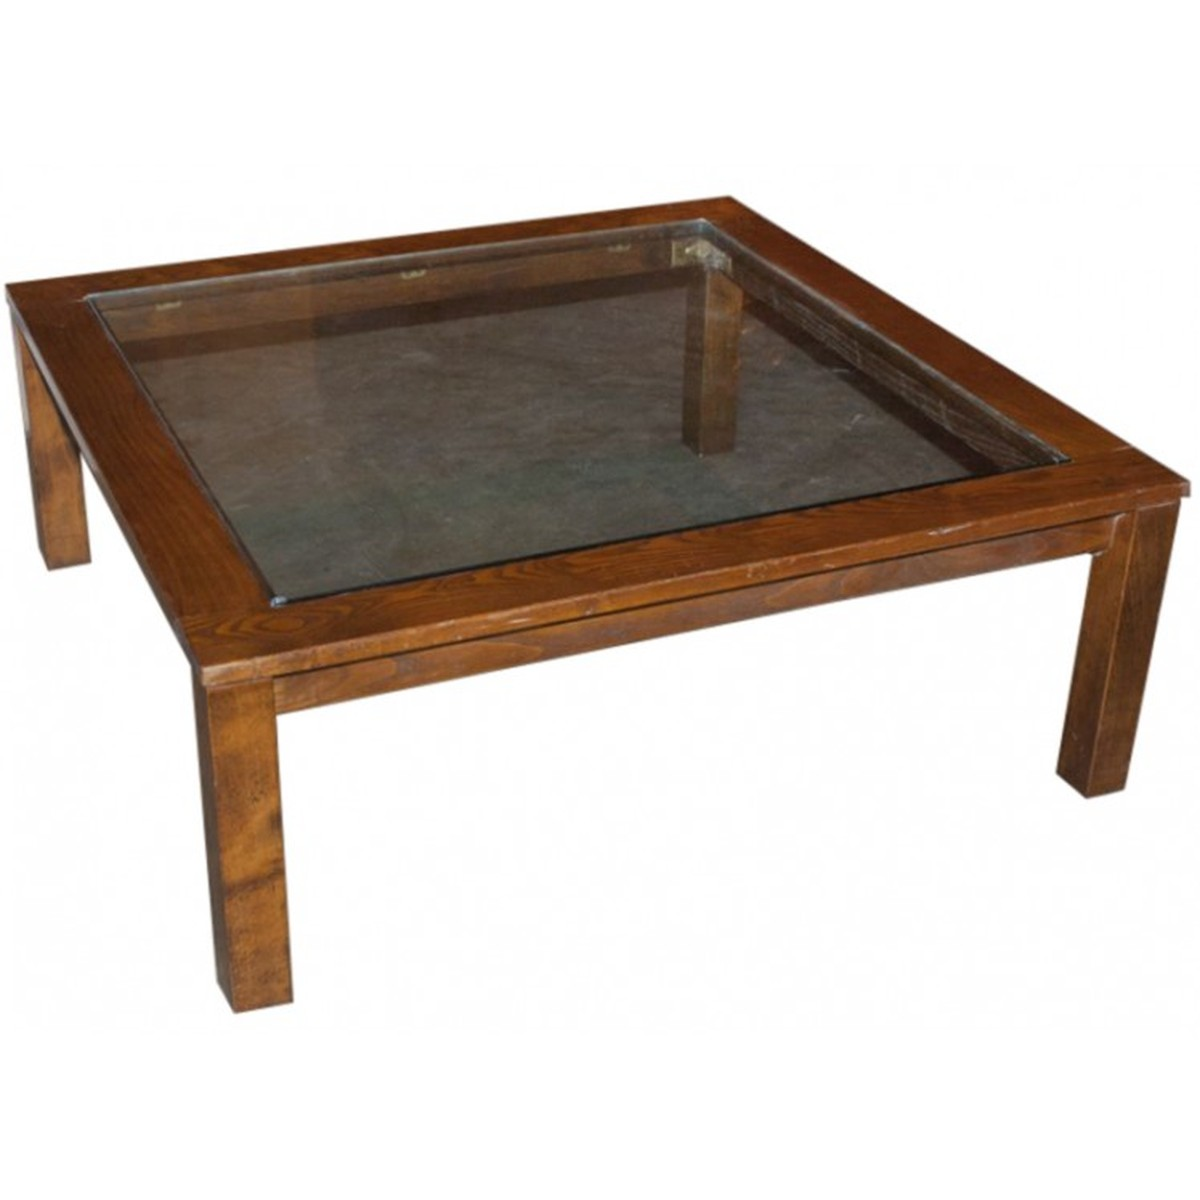 Secondhand hotel furniture lounge furniture large square glass top coffee table Glass top for coffee table